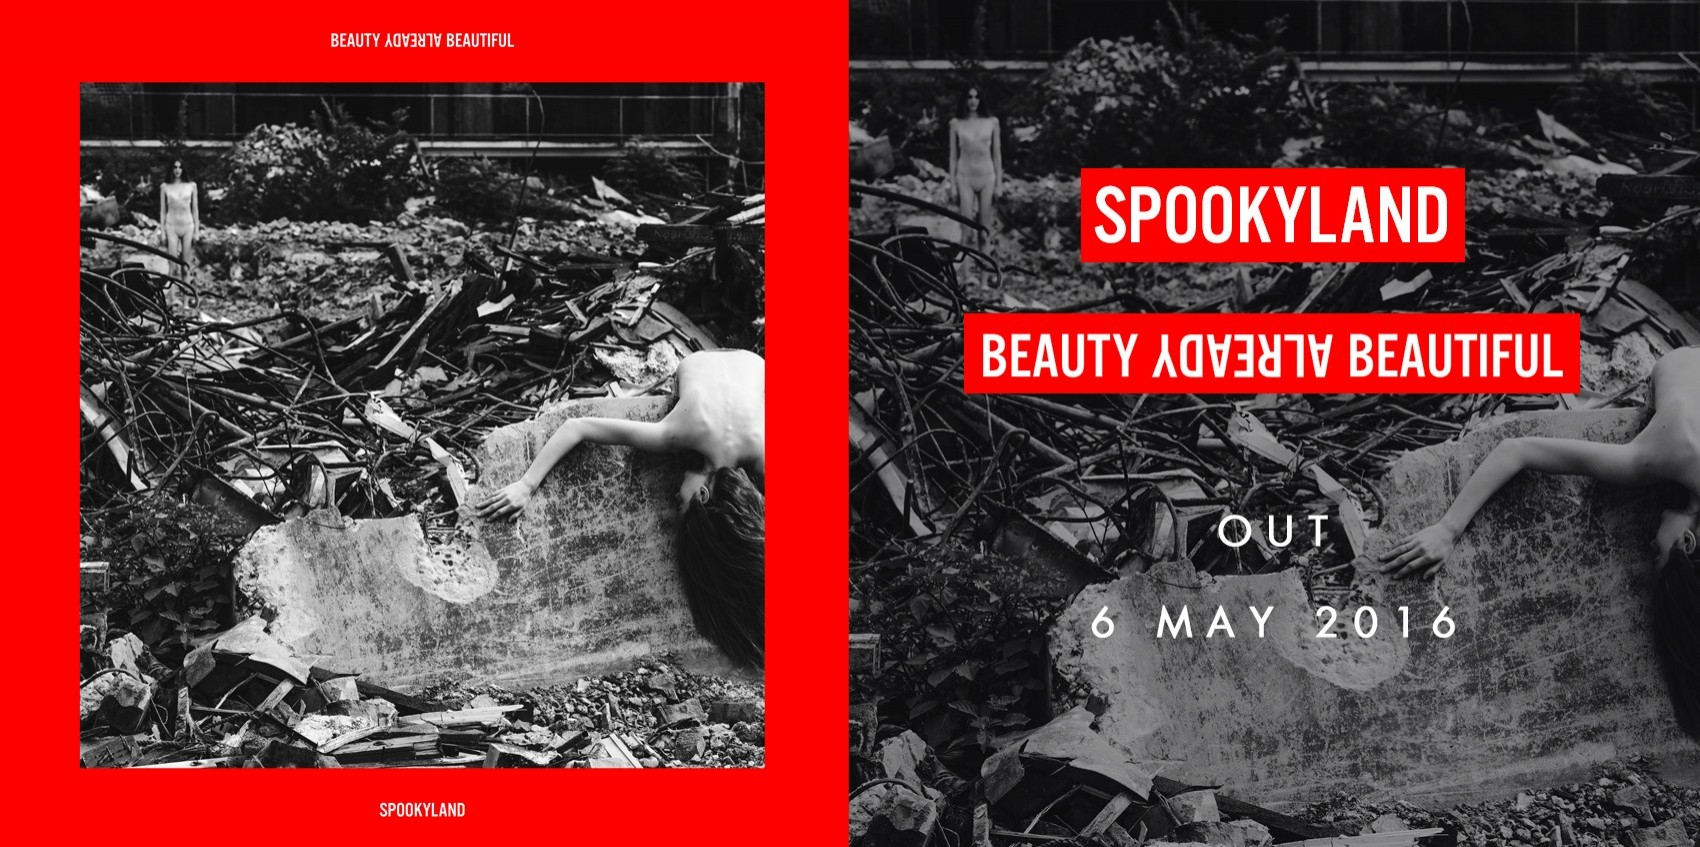 Spookyland \'Beauty Already Beautiful\' Banner